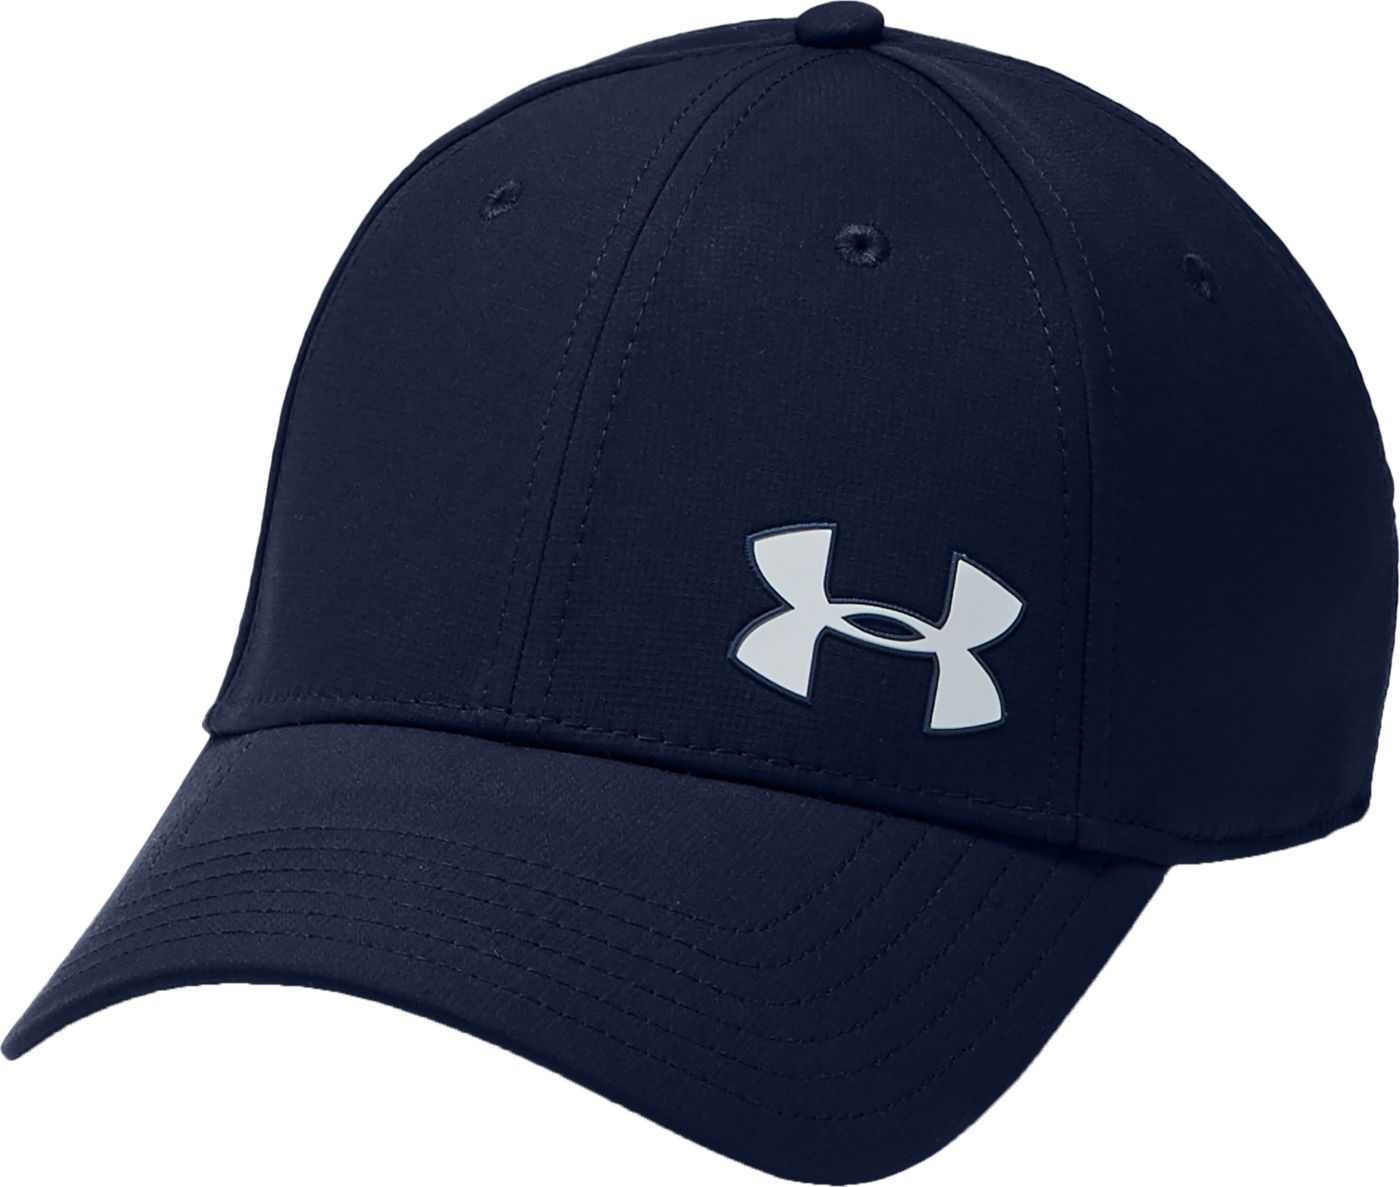 Under Armour Men's Headline 3.0 Golf Hat